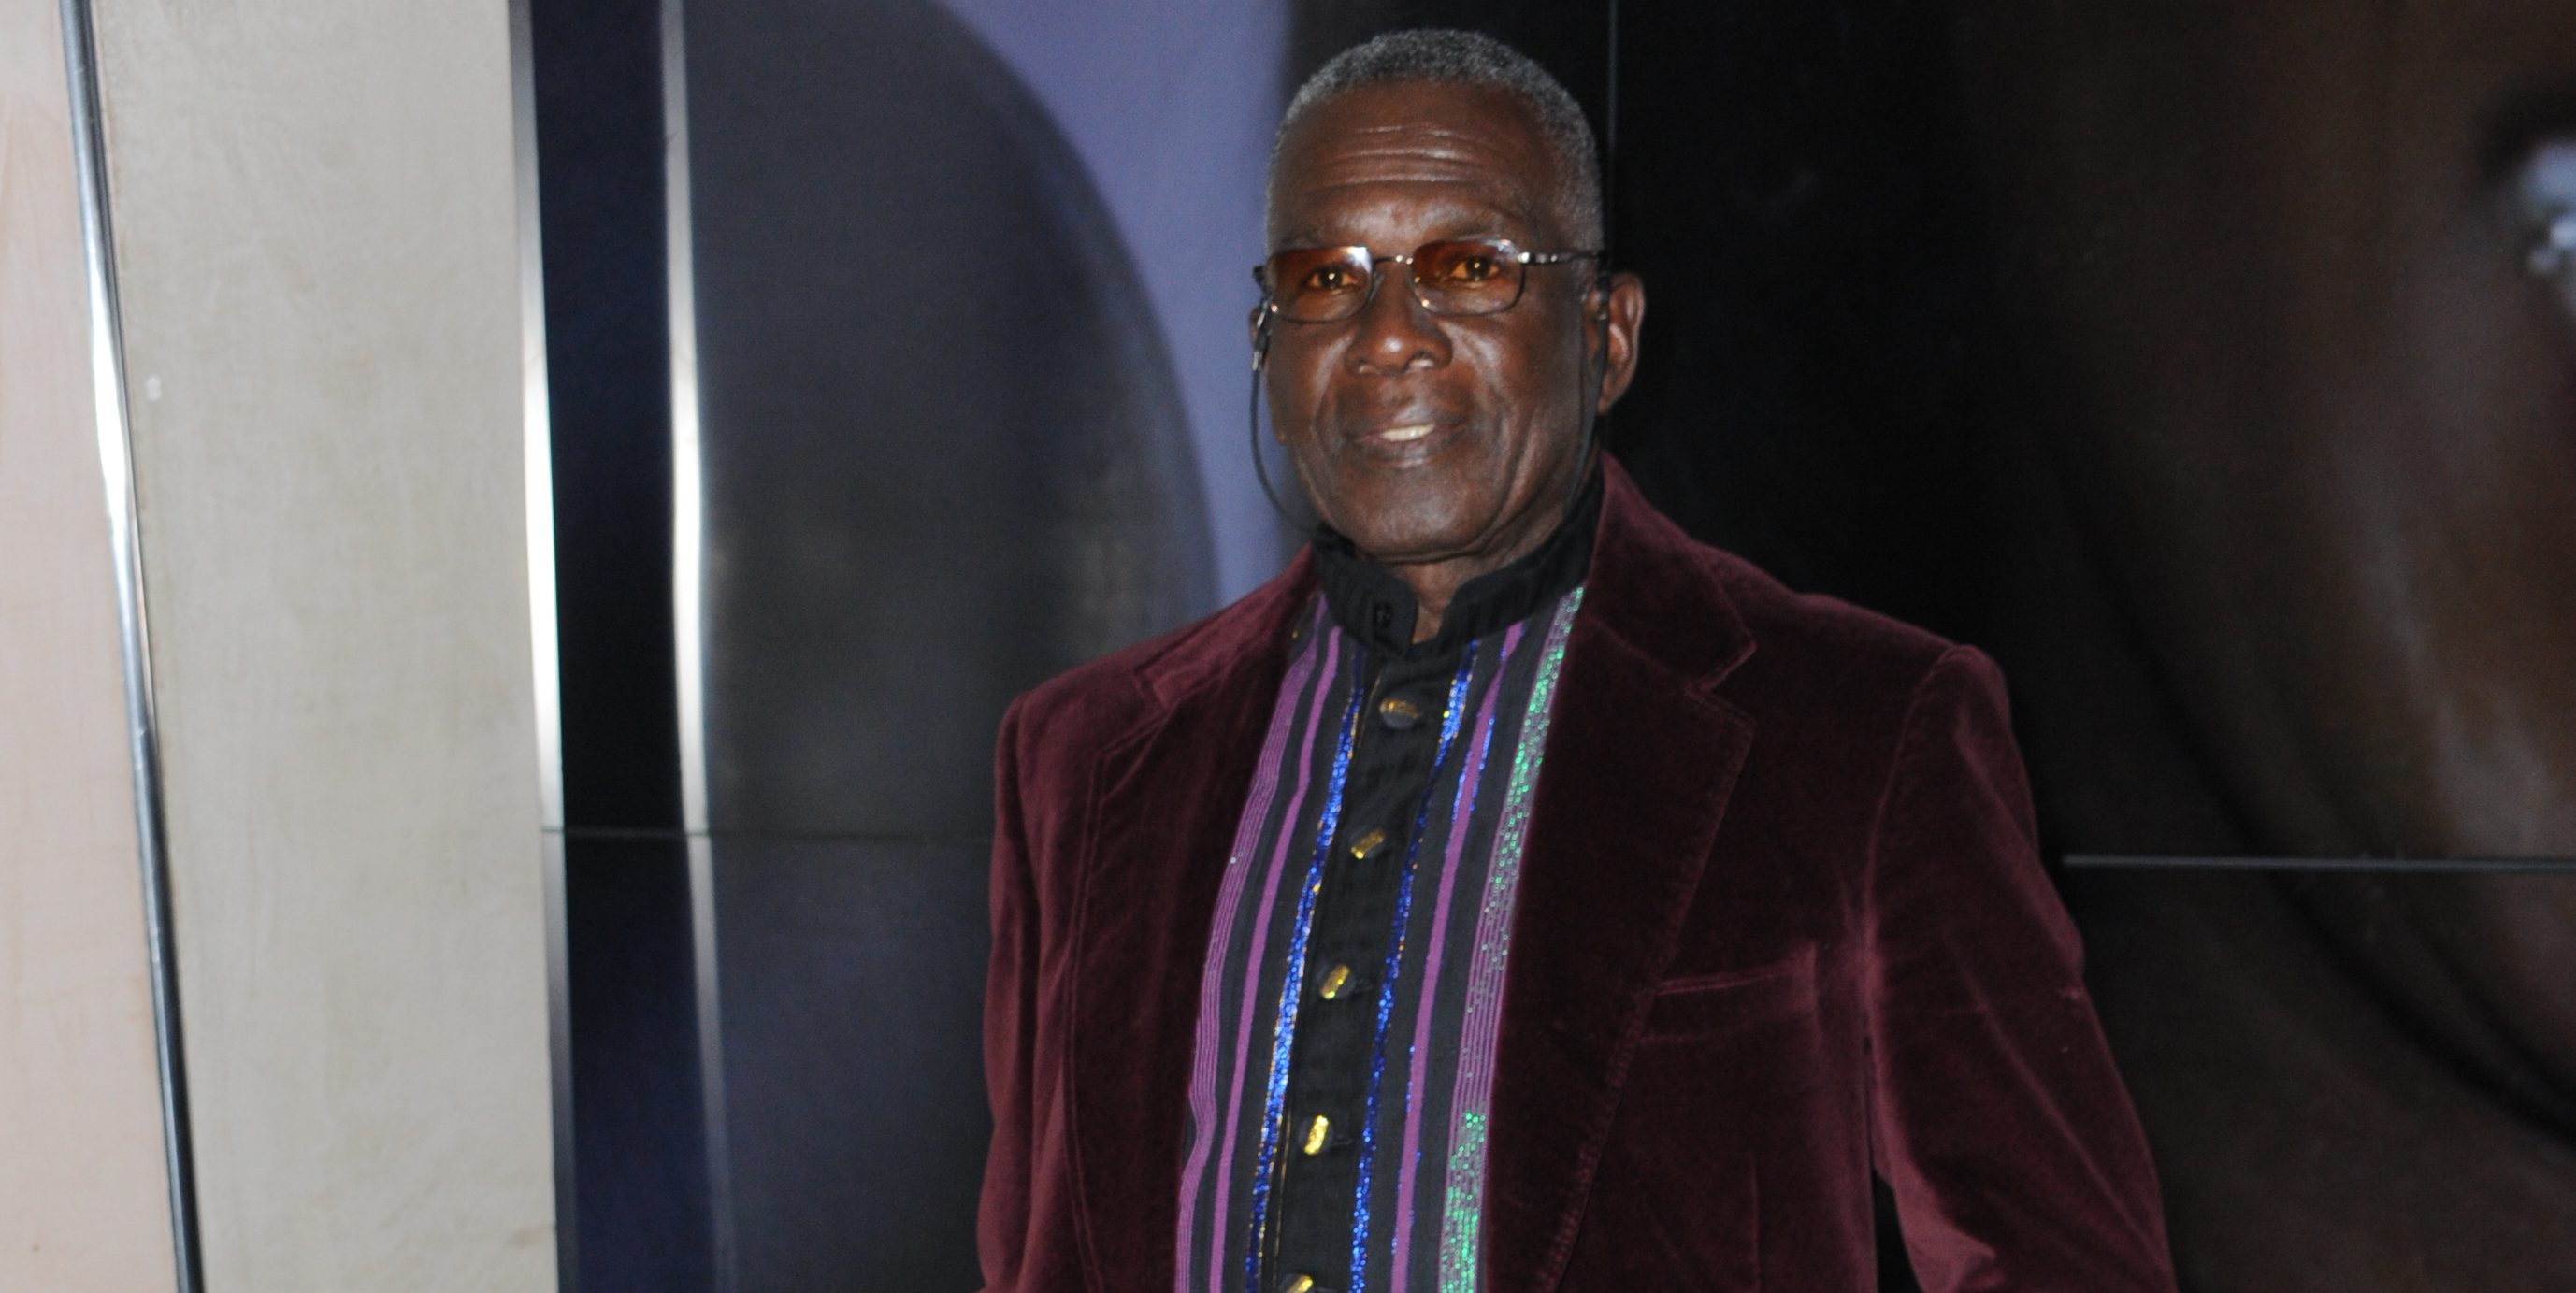 Former EastEnders stars reunite with cast for Rudolph Walker's 80th birthday